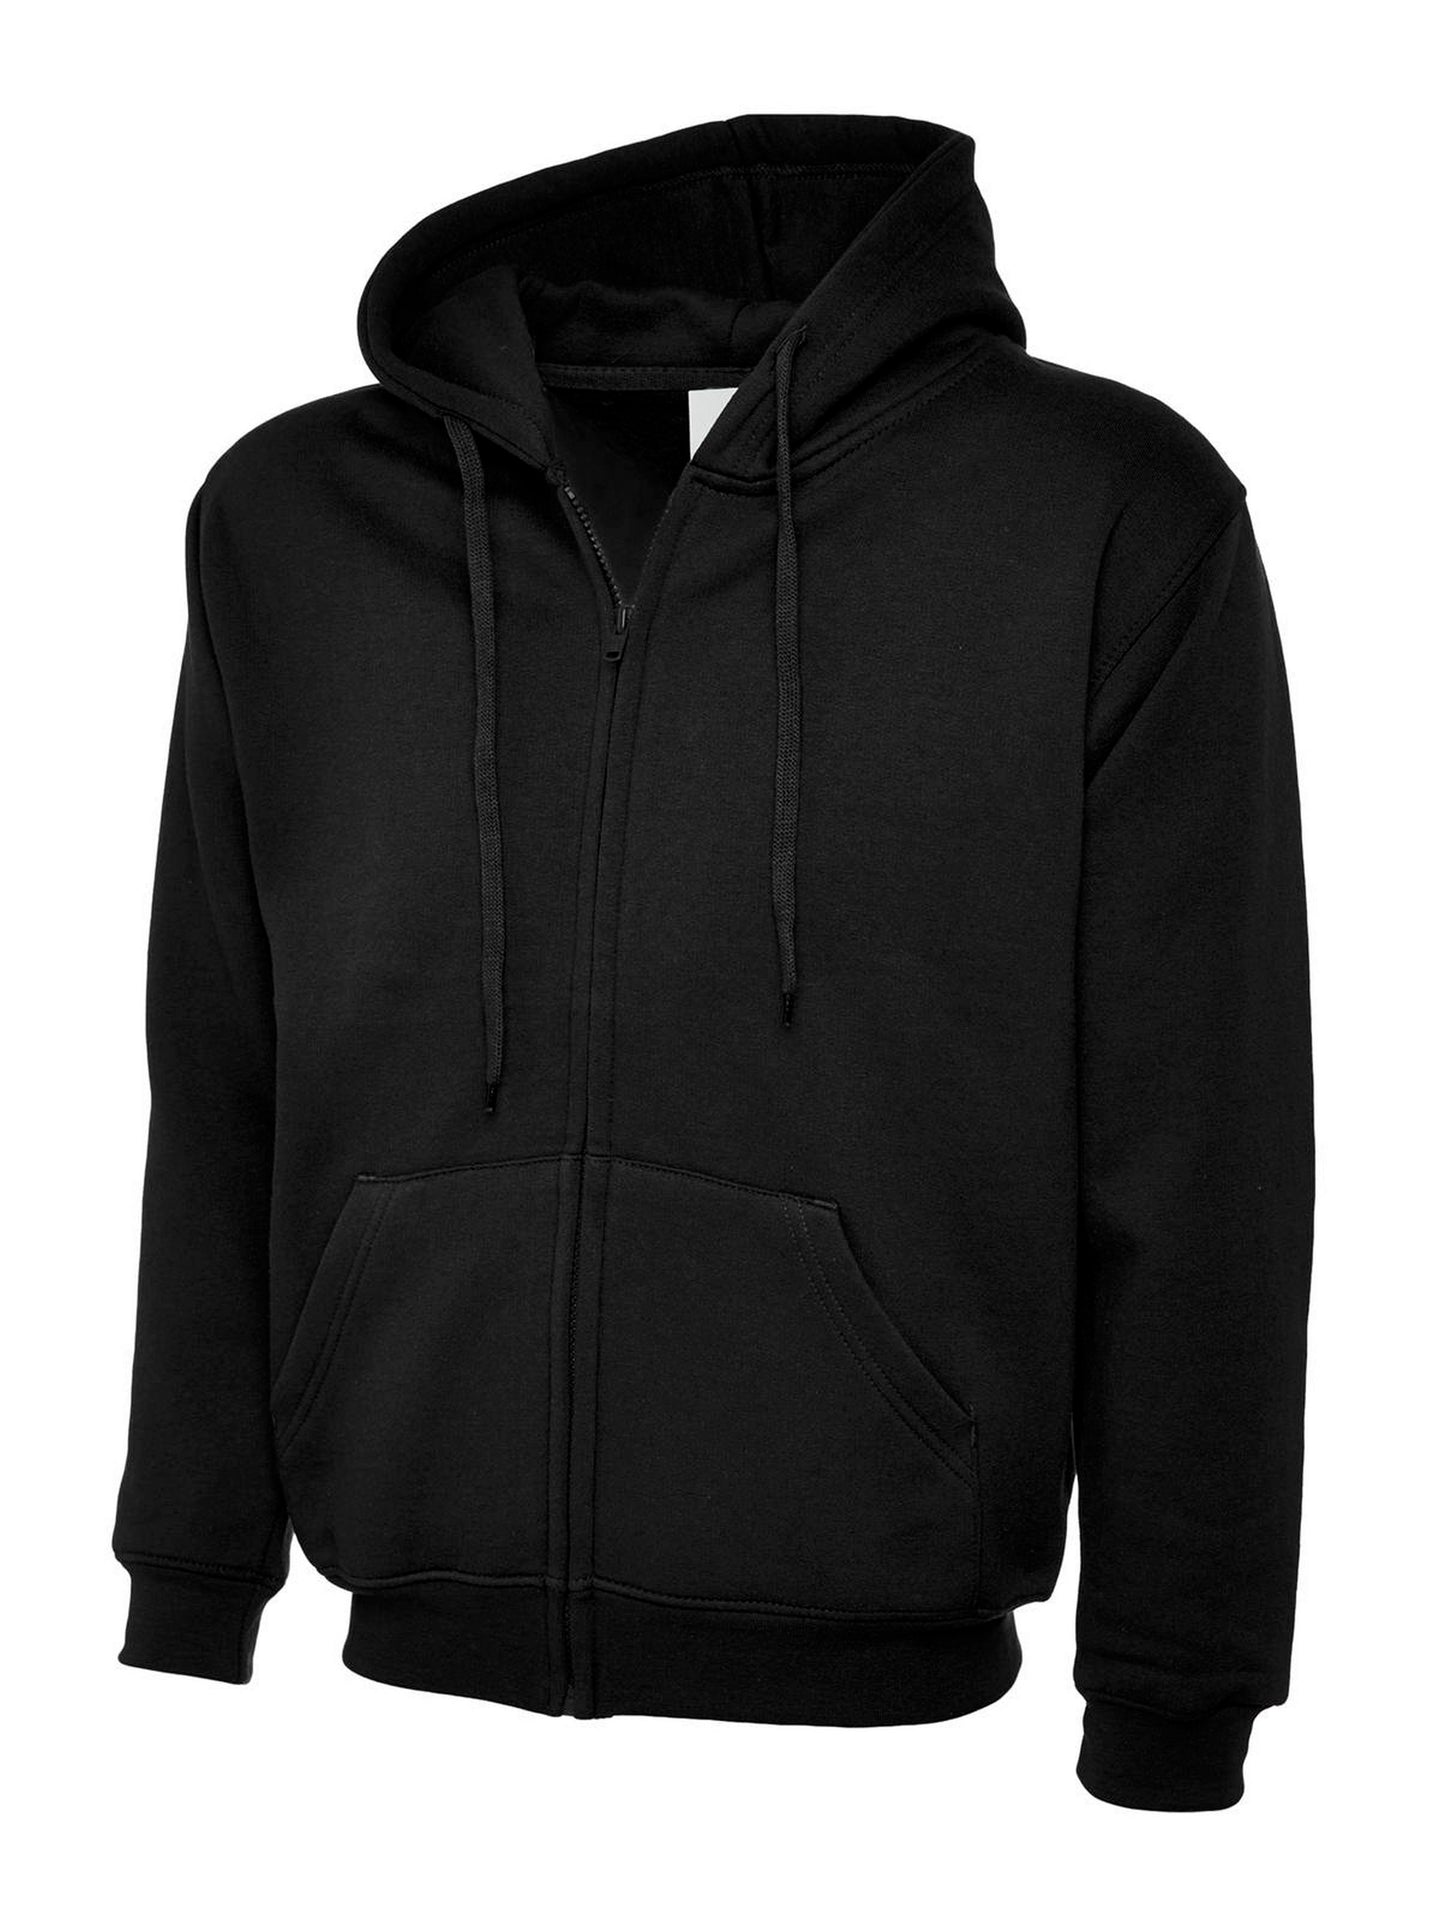 Design Your Own Full Zip Hoodie - The Forces Shop